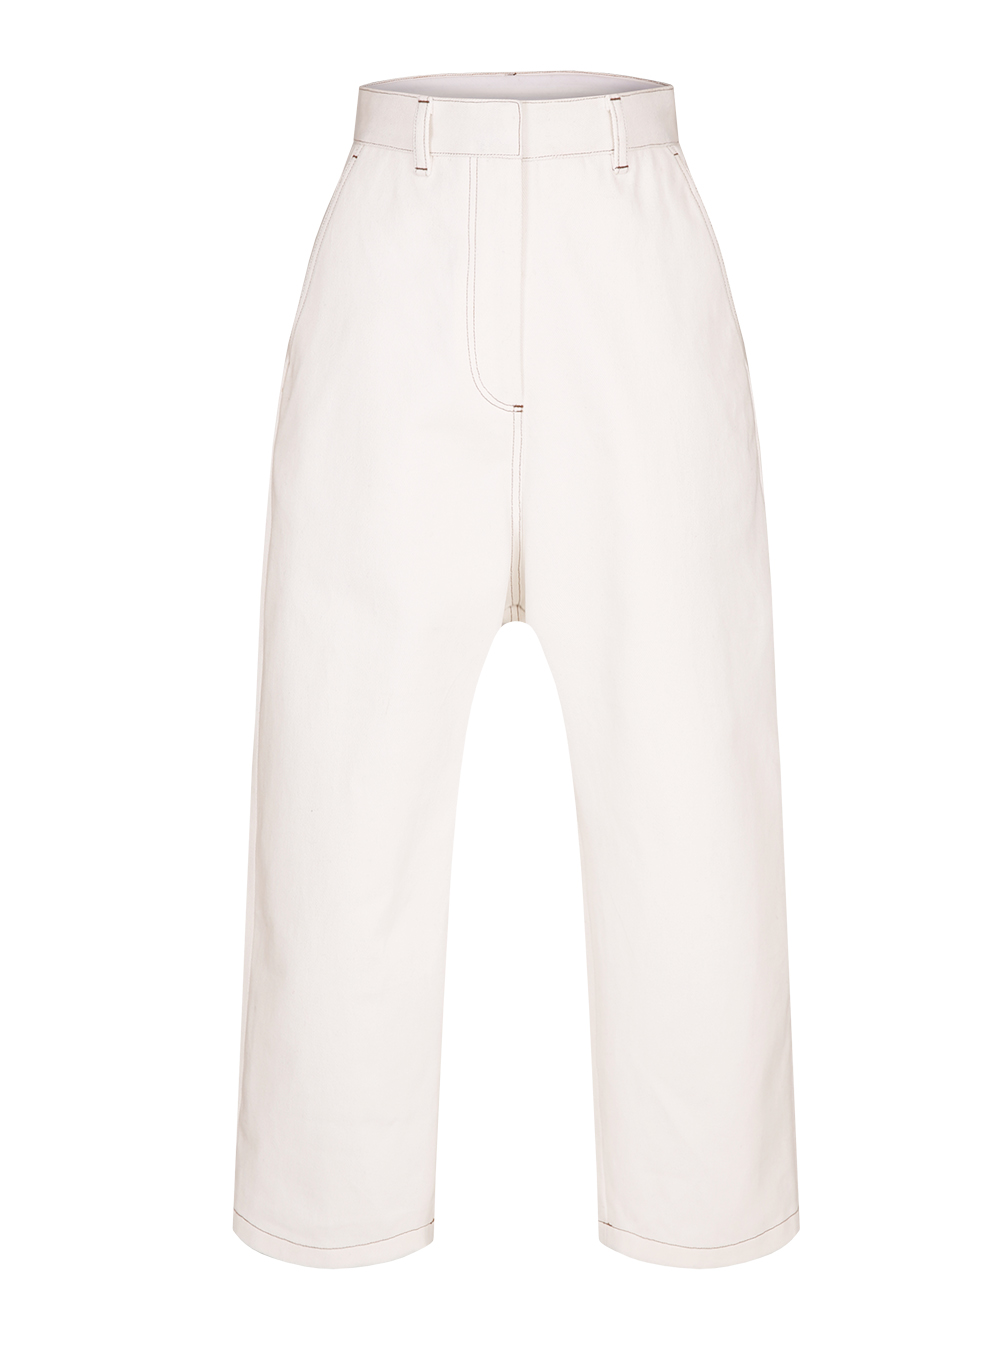 FW18 COCOON PANTS DENIM IVORY